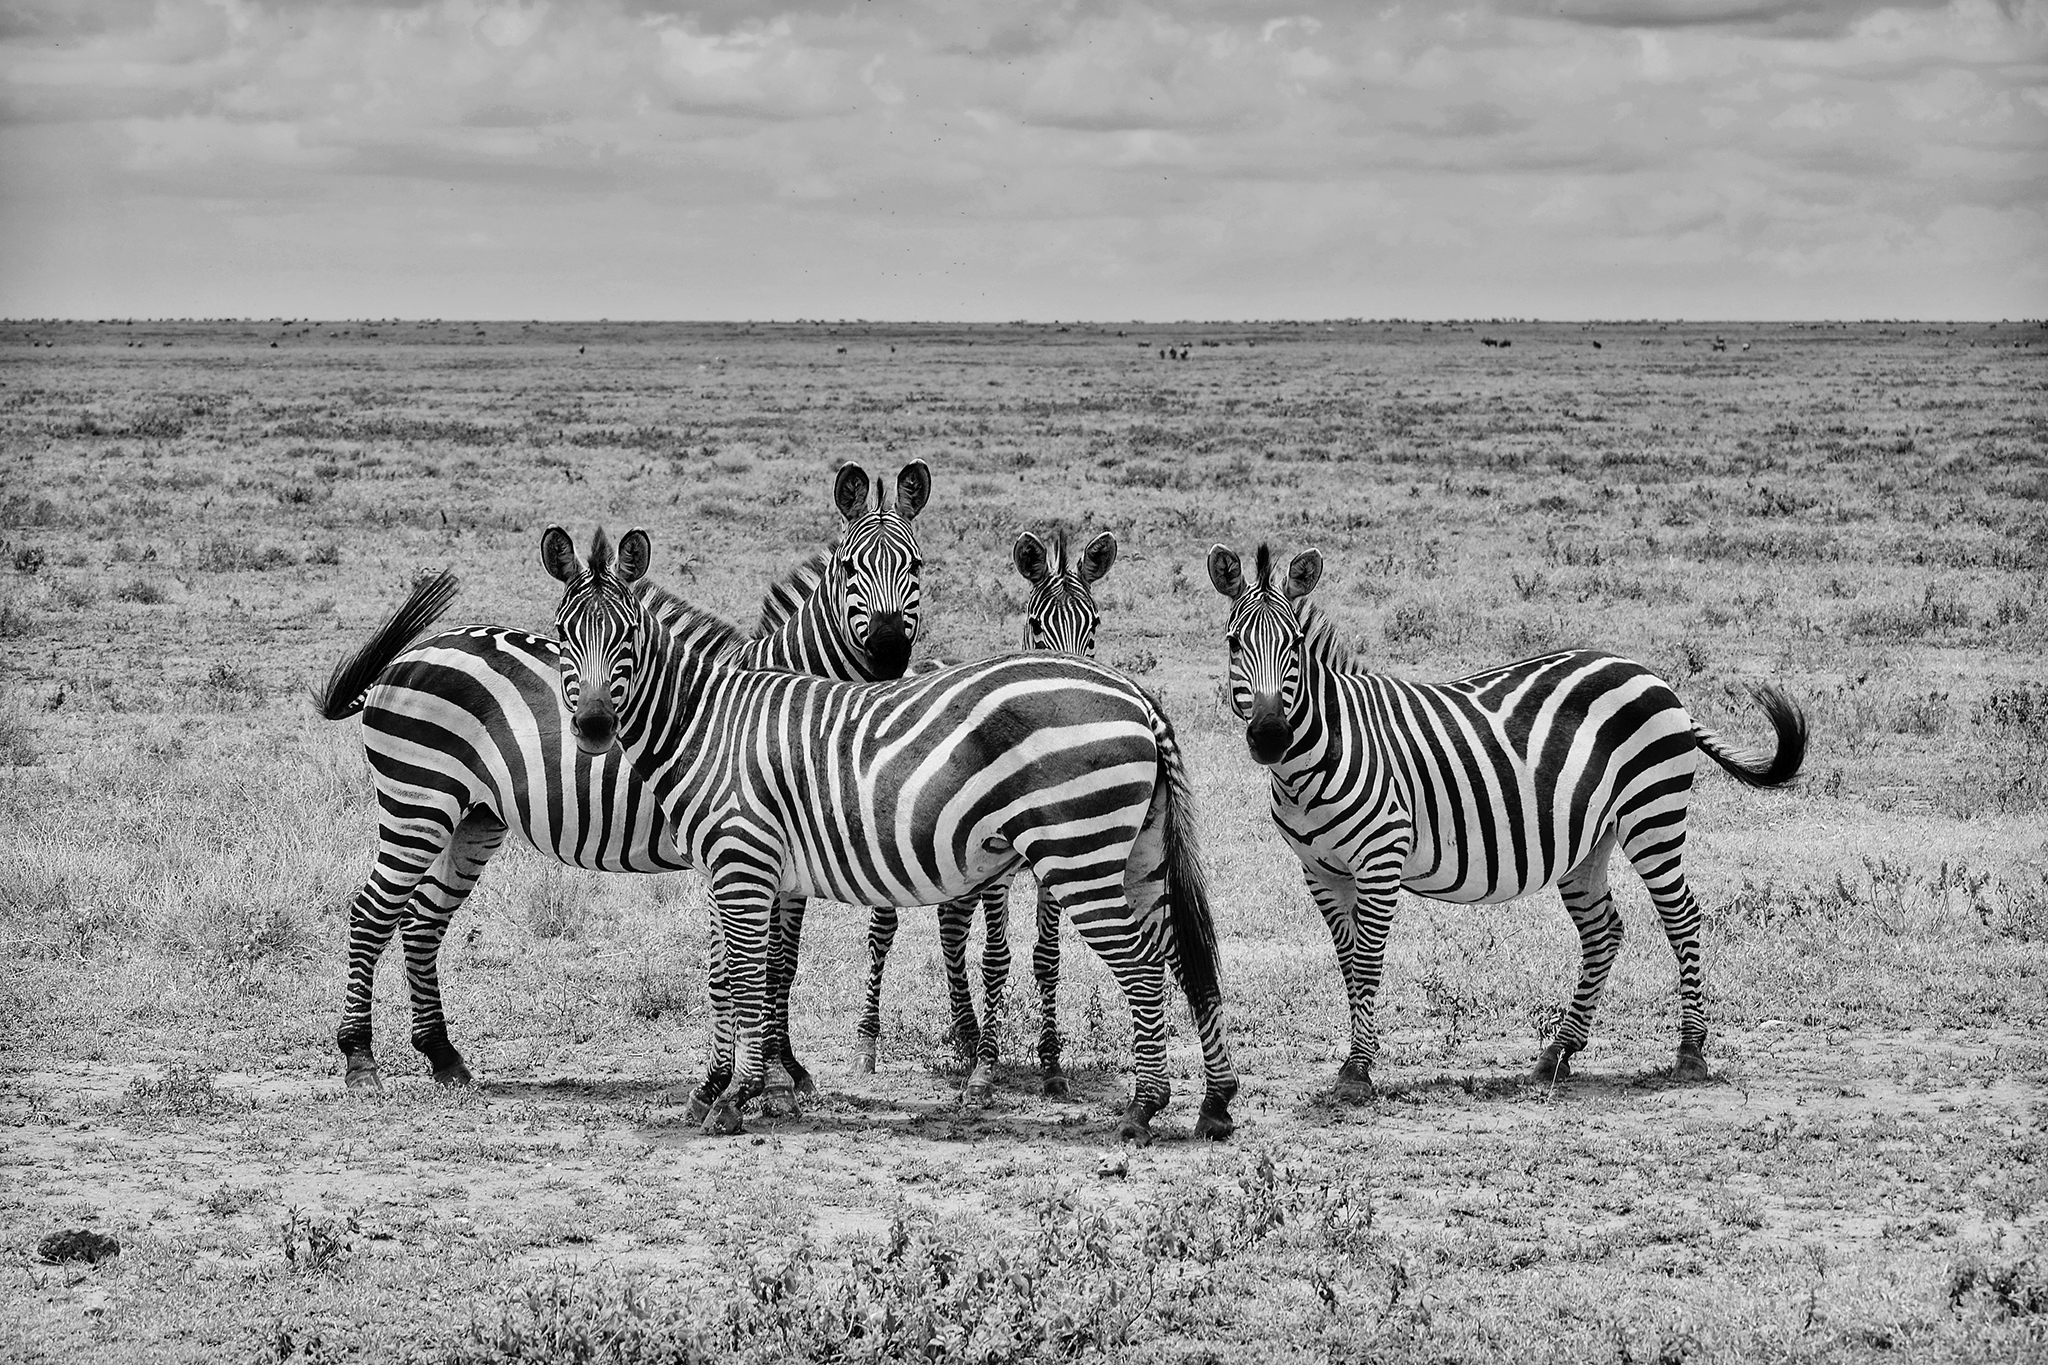 """WHEN YOU HEAR THE SOUNDS OF A HOOVES YOU THINK HORSES NOT ZEBRAS. WE ARE THOSE ZEBRAS."